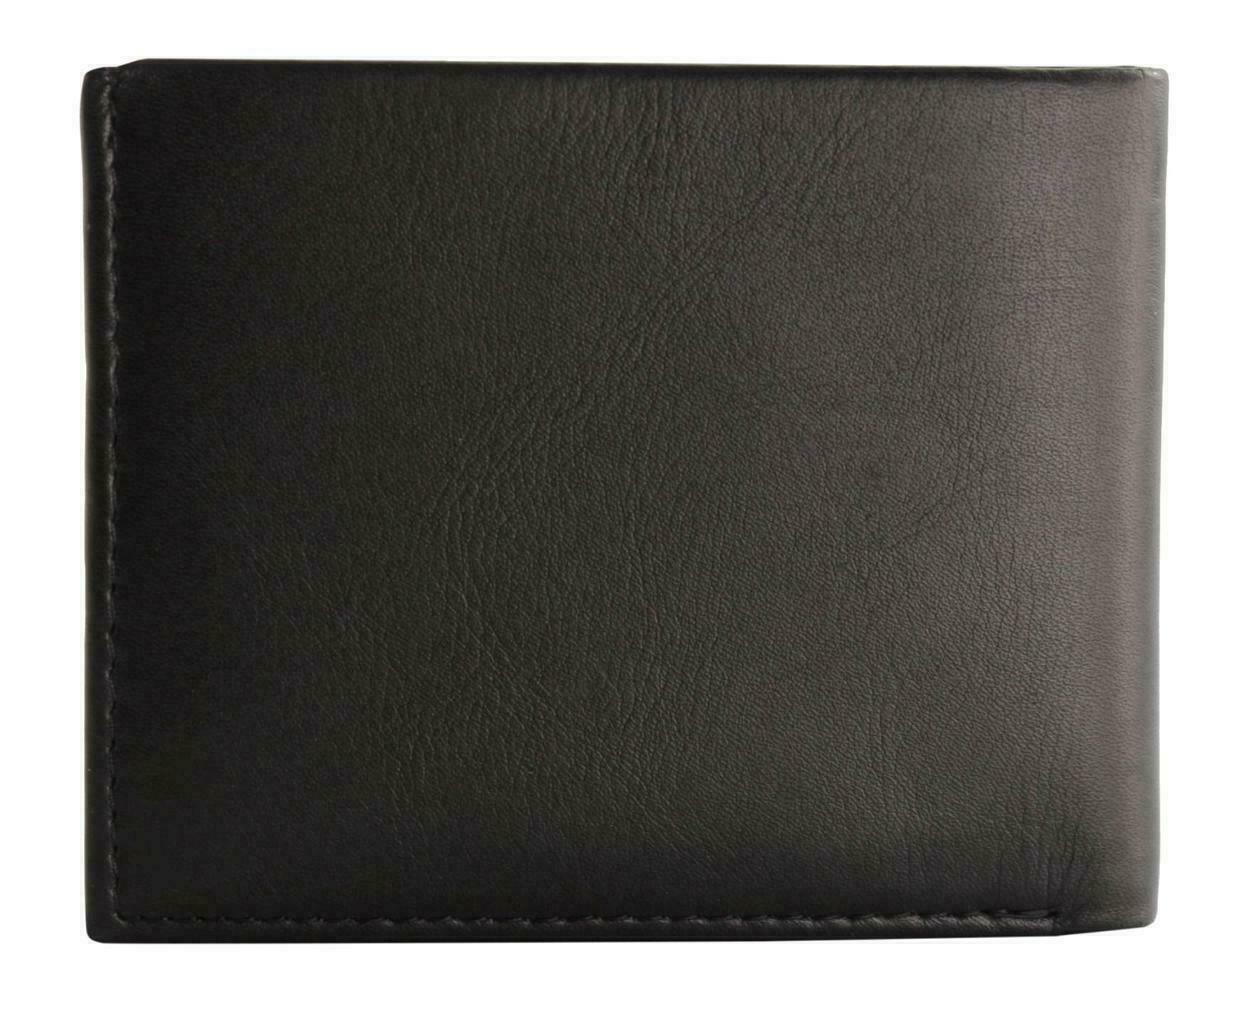 Guess Men's Premium Leather Double Billfold Credit Card Wallet Black 31GU13X030